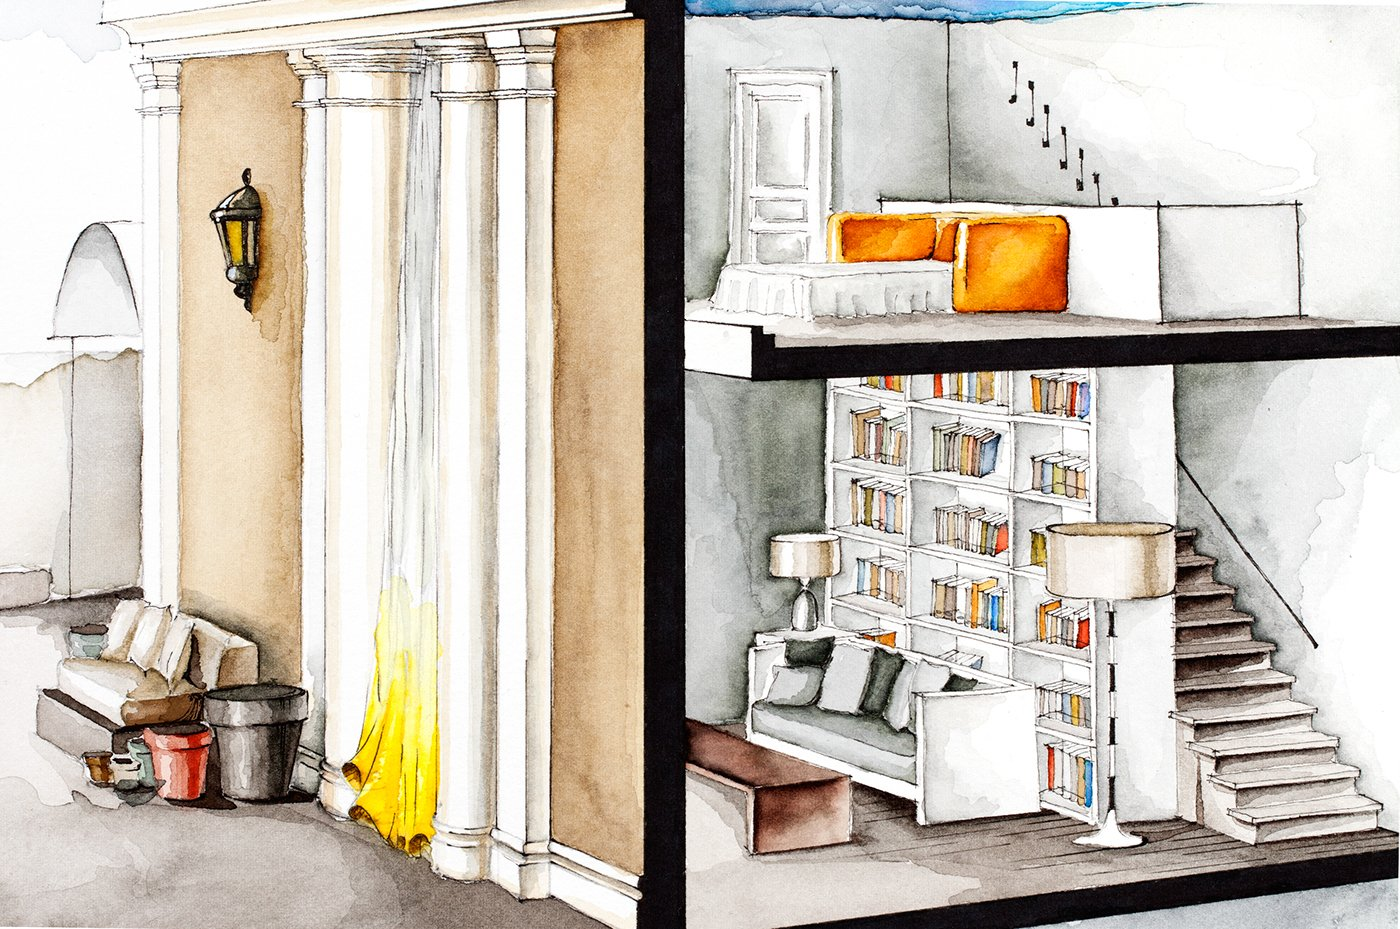 Apartment From The Great Beauty - Watercolor floorplans from recent television shows and films